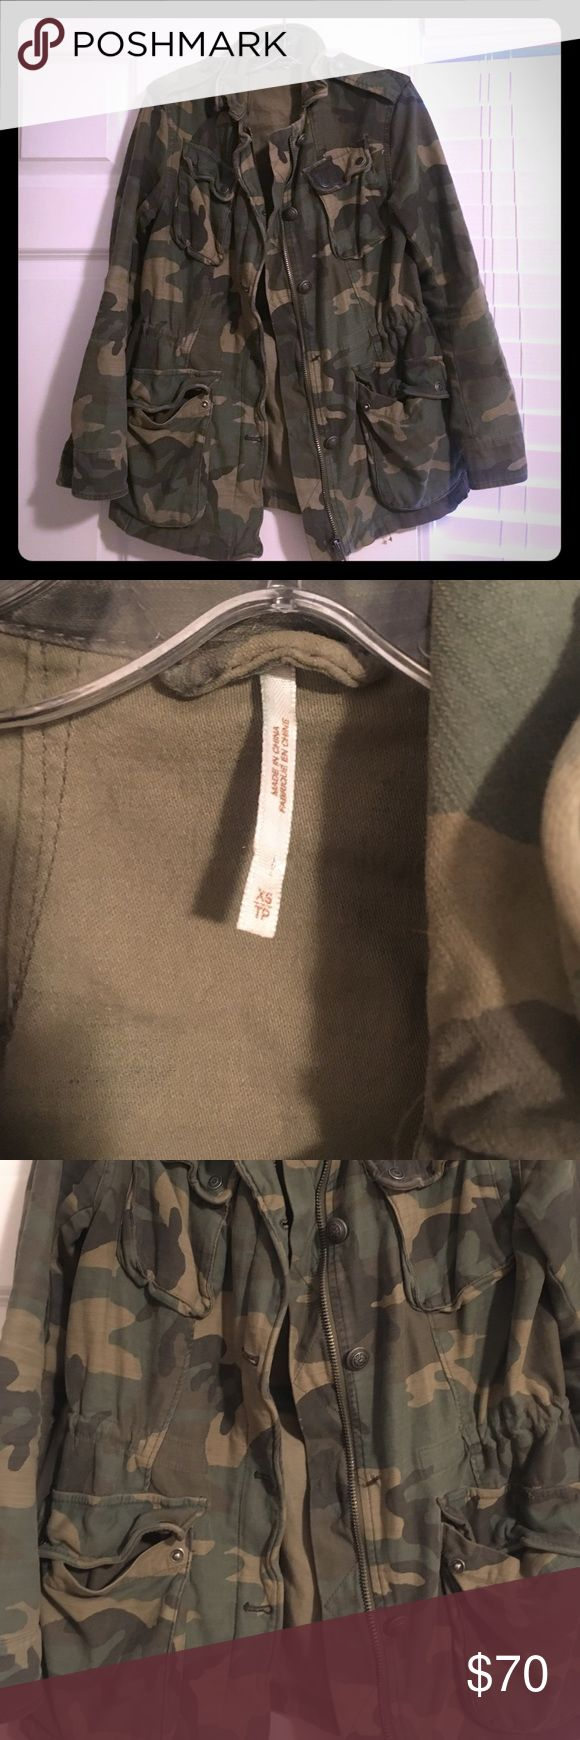 Free People boyfriend jacket One button missing.... but I have the button to attach it.  Less than 6 months old Free People Jackets & Coats Utility Jackets